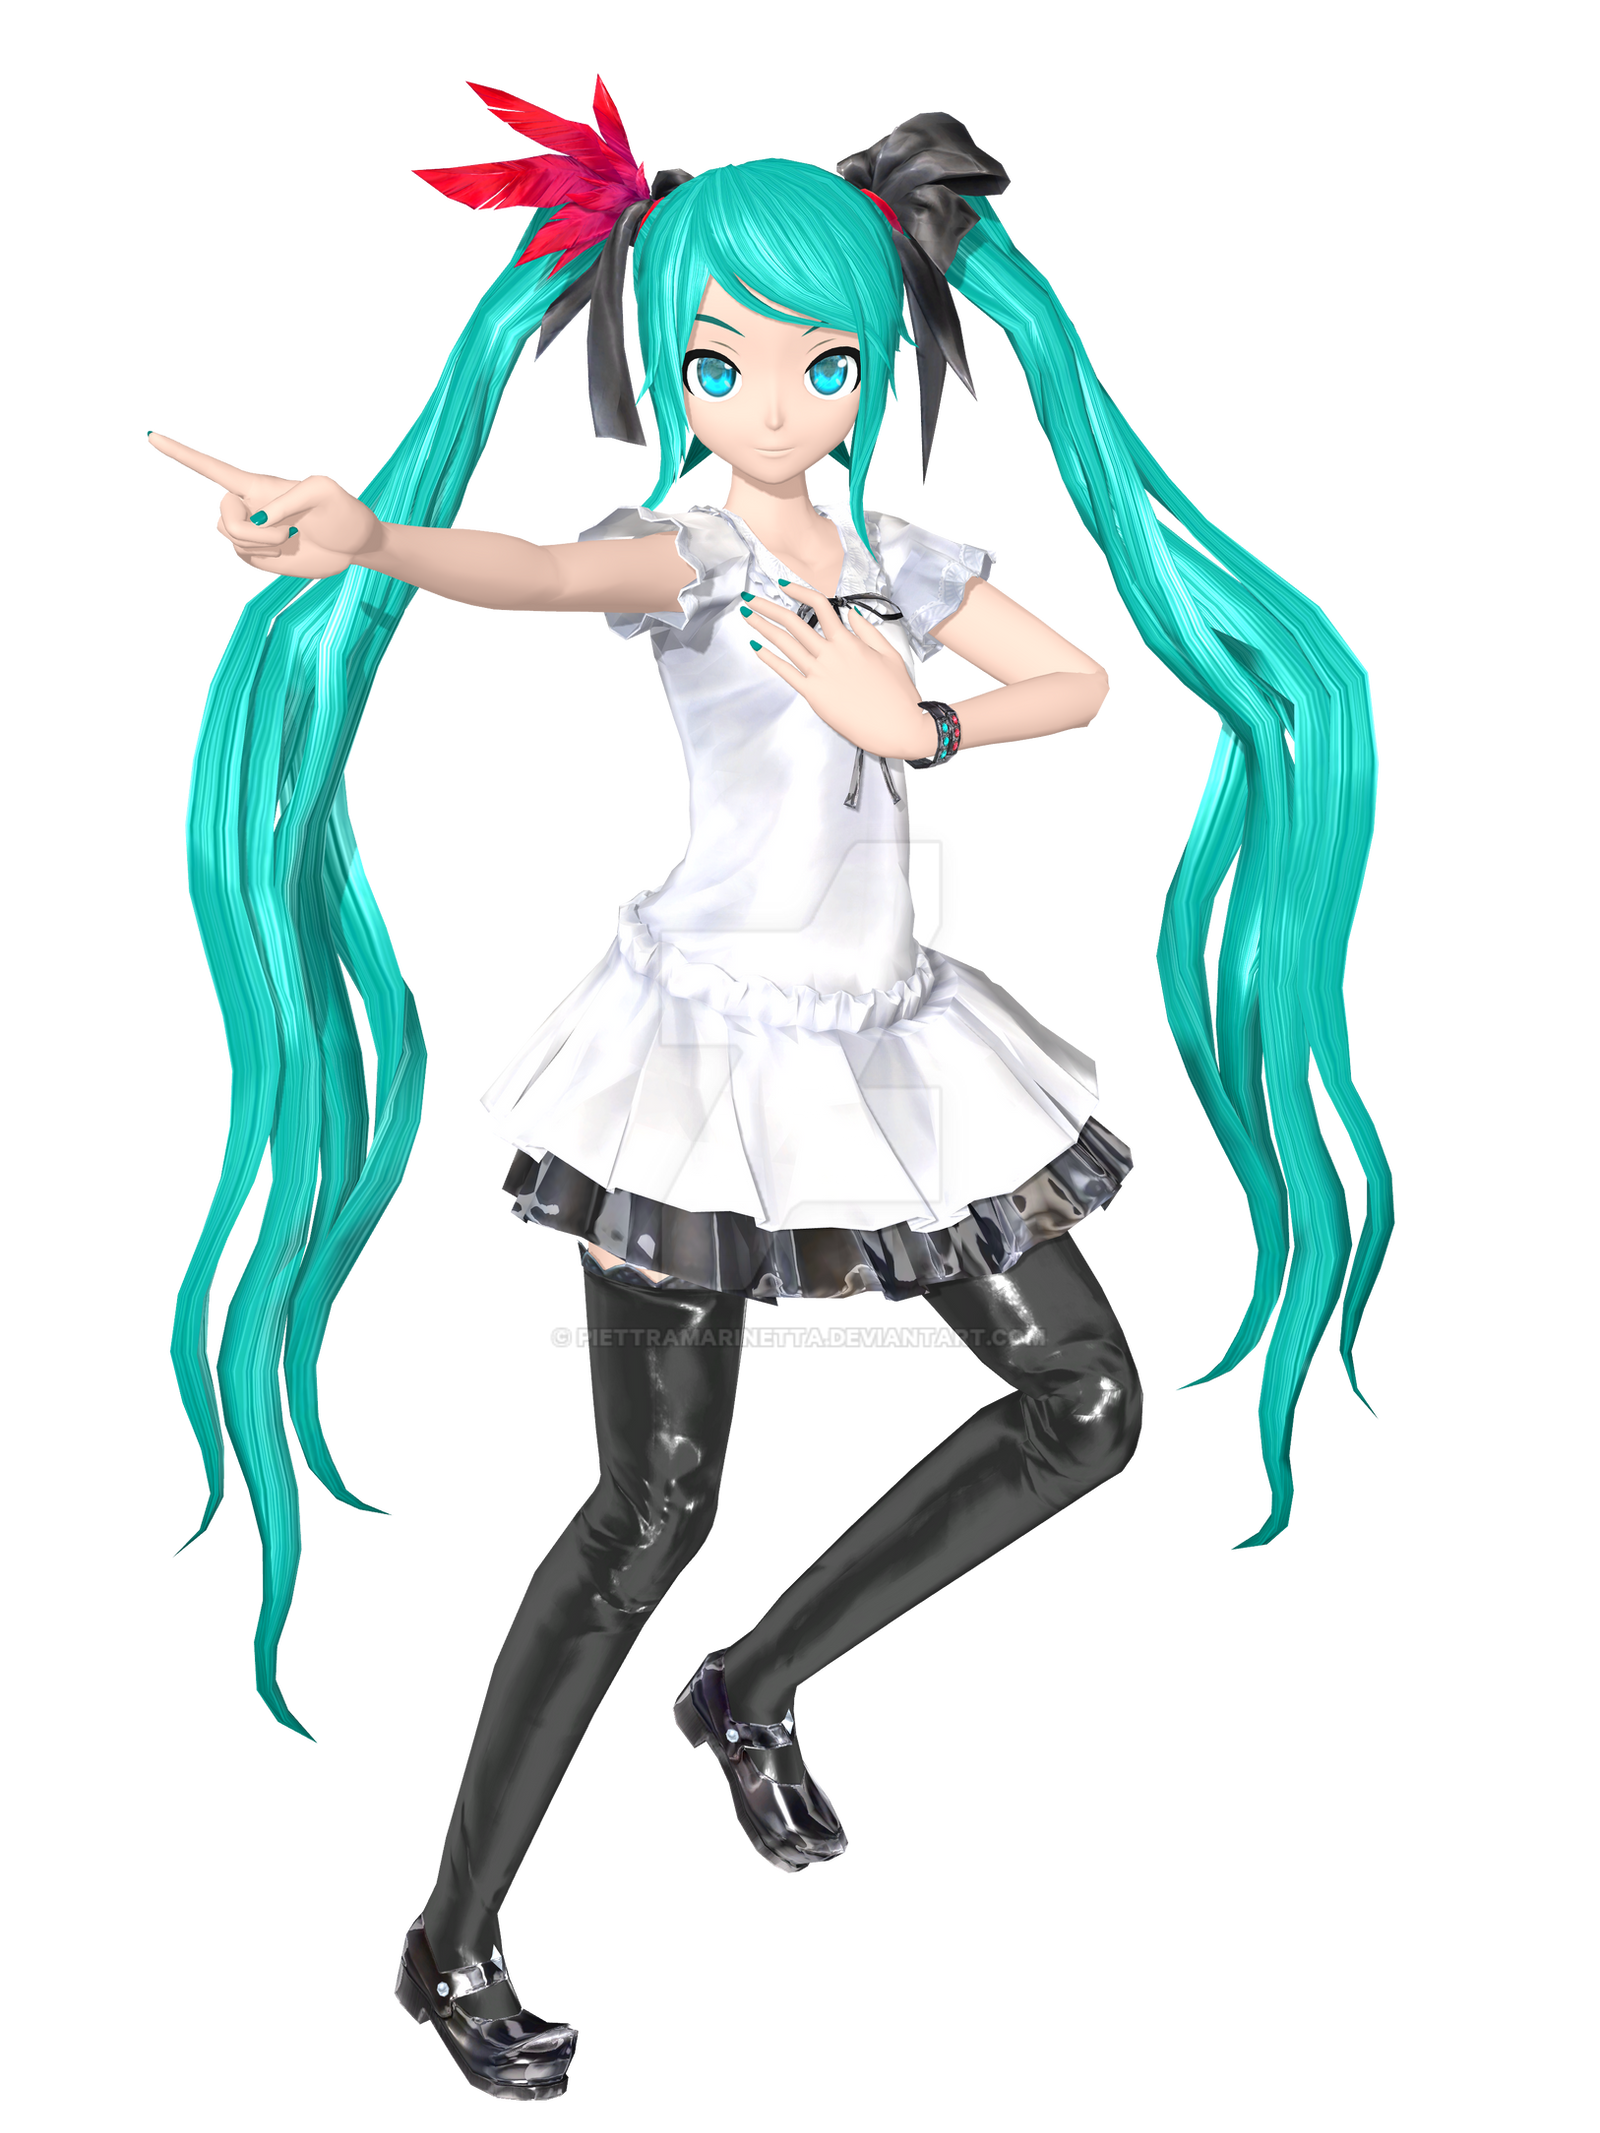 [DT x PDF2nd] .: Supreme Miku :. by PiettraMarinetta